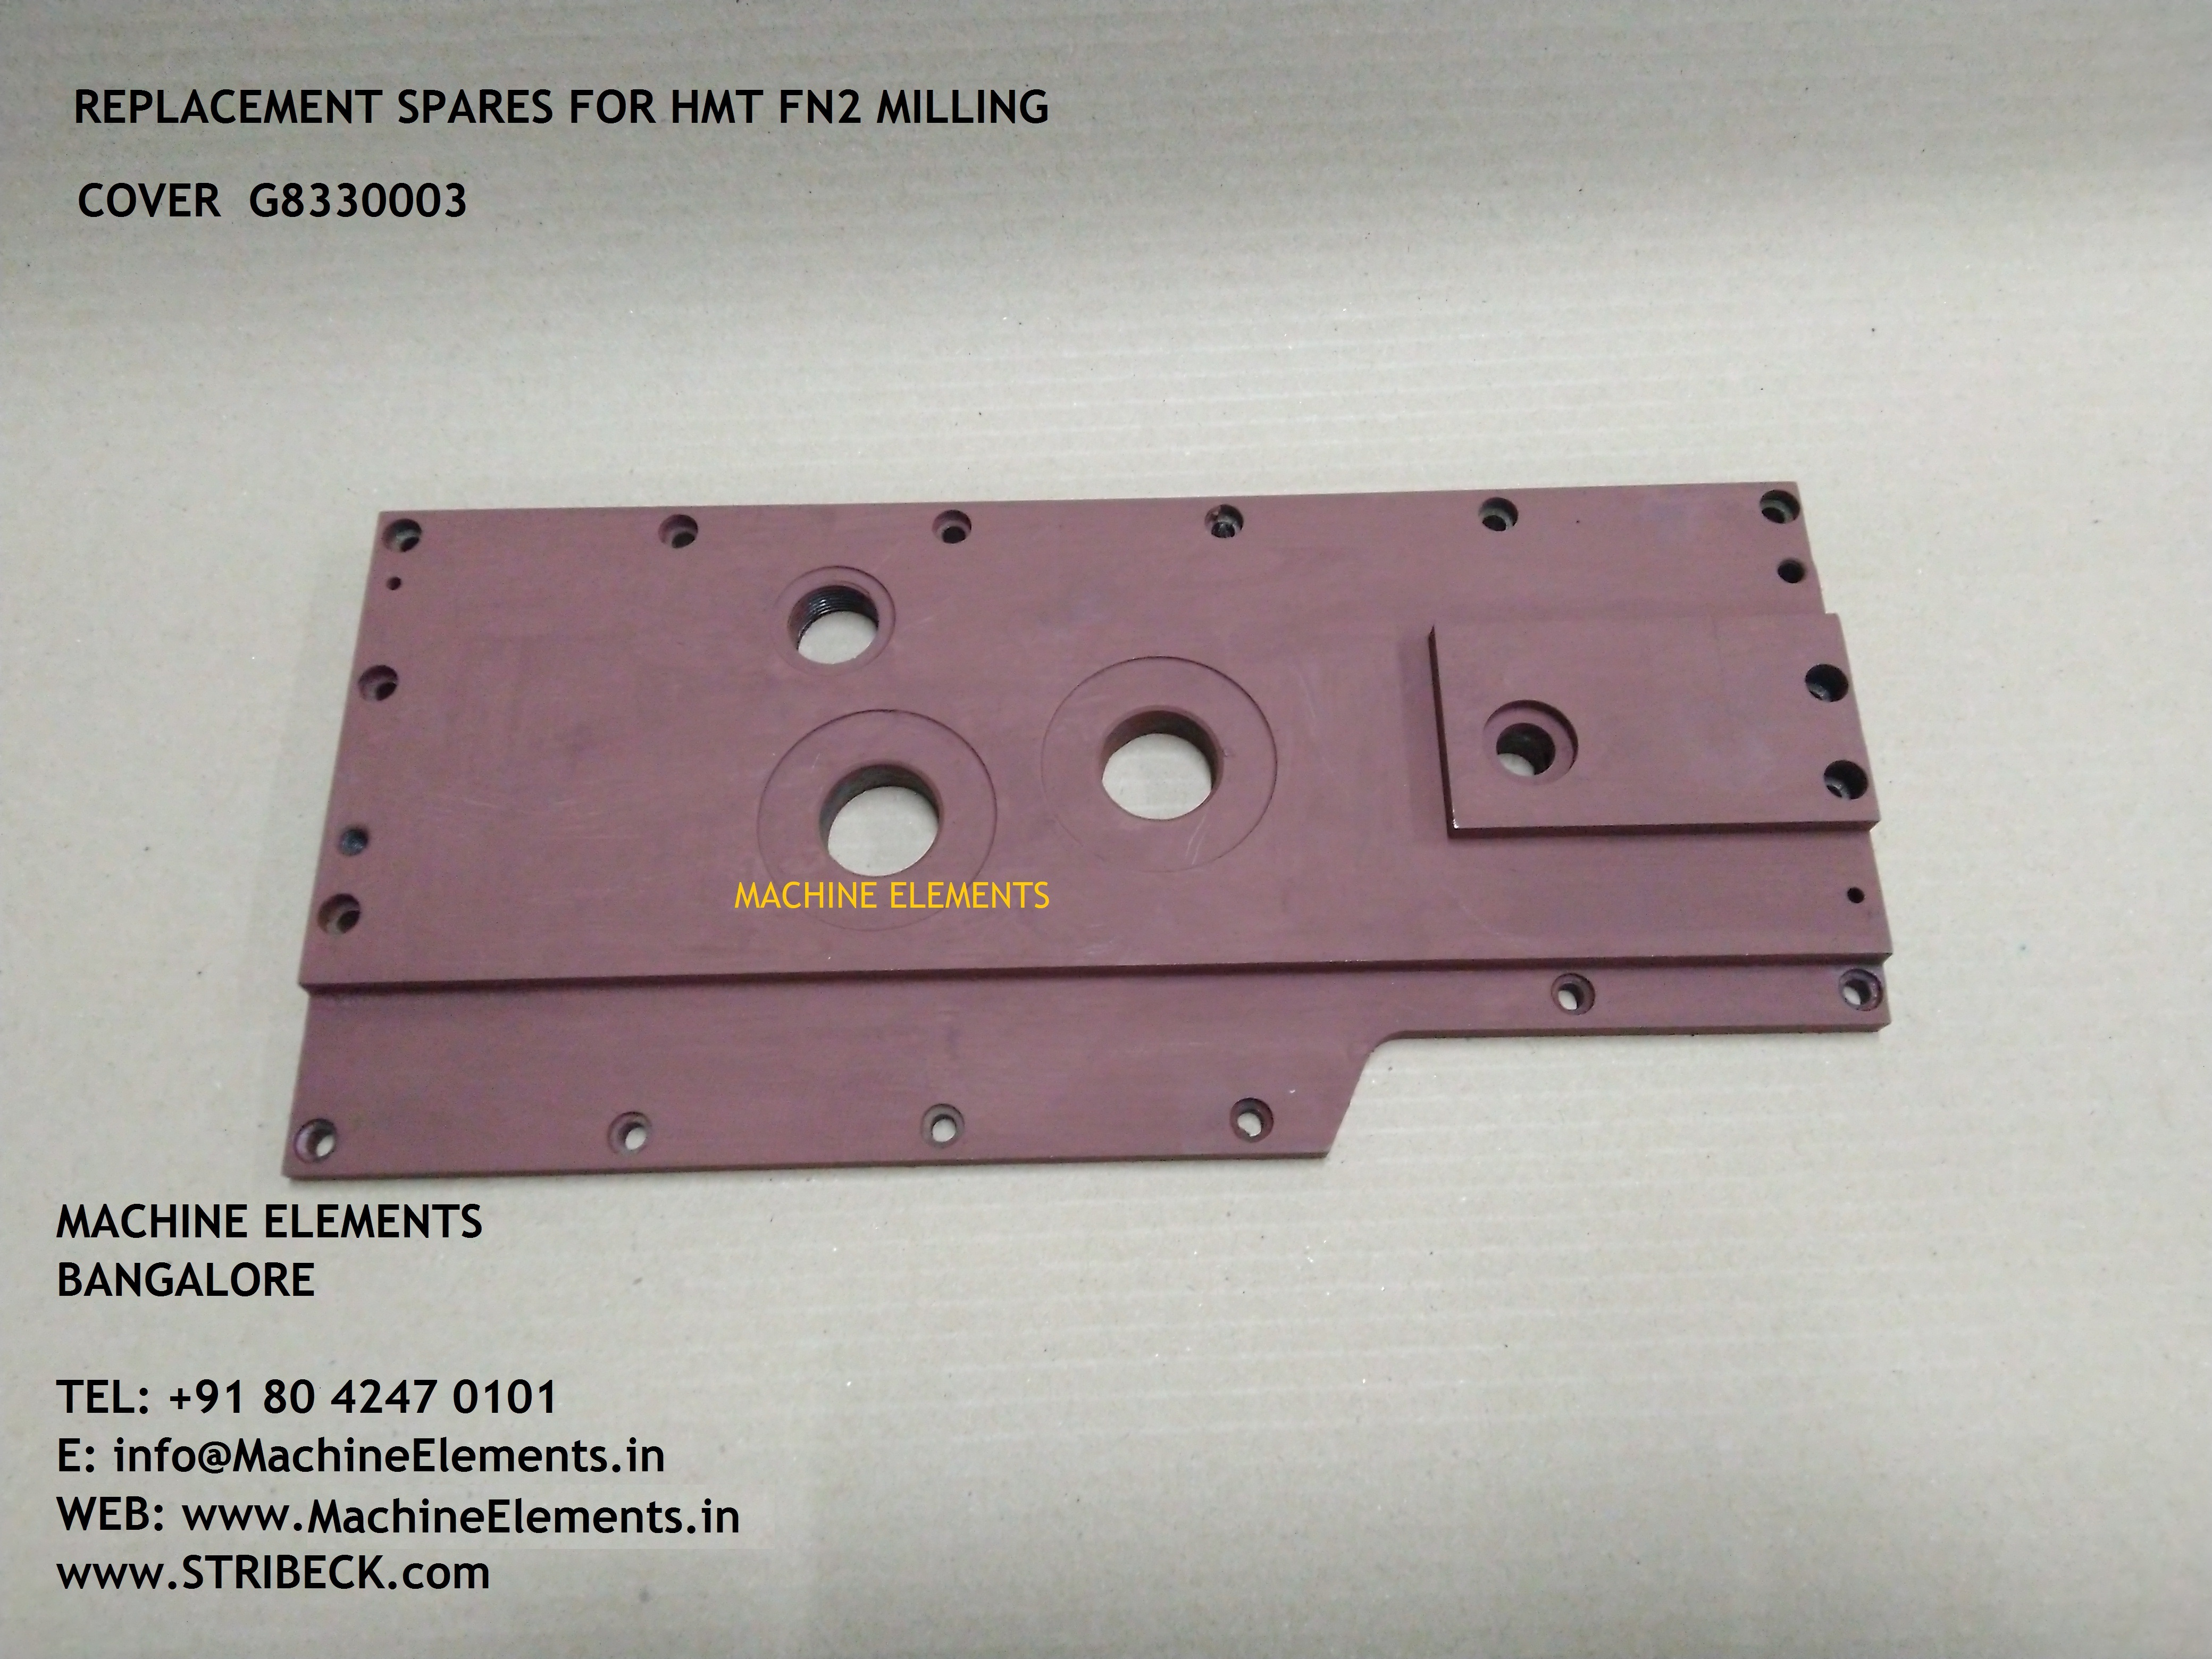 COVER G8330003